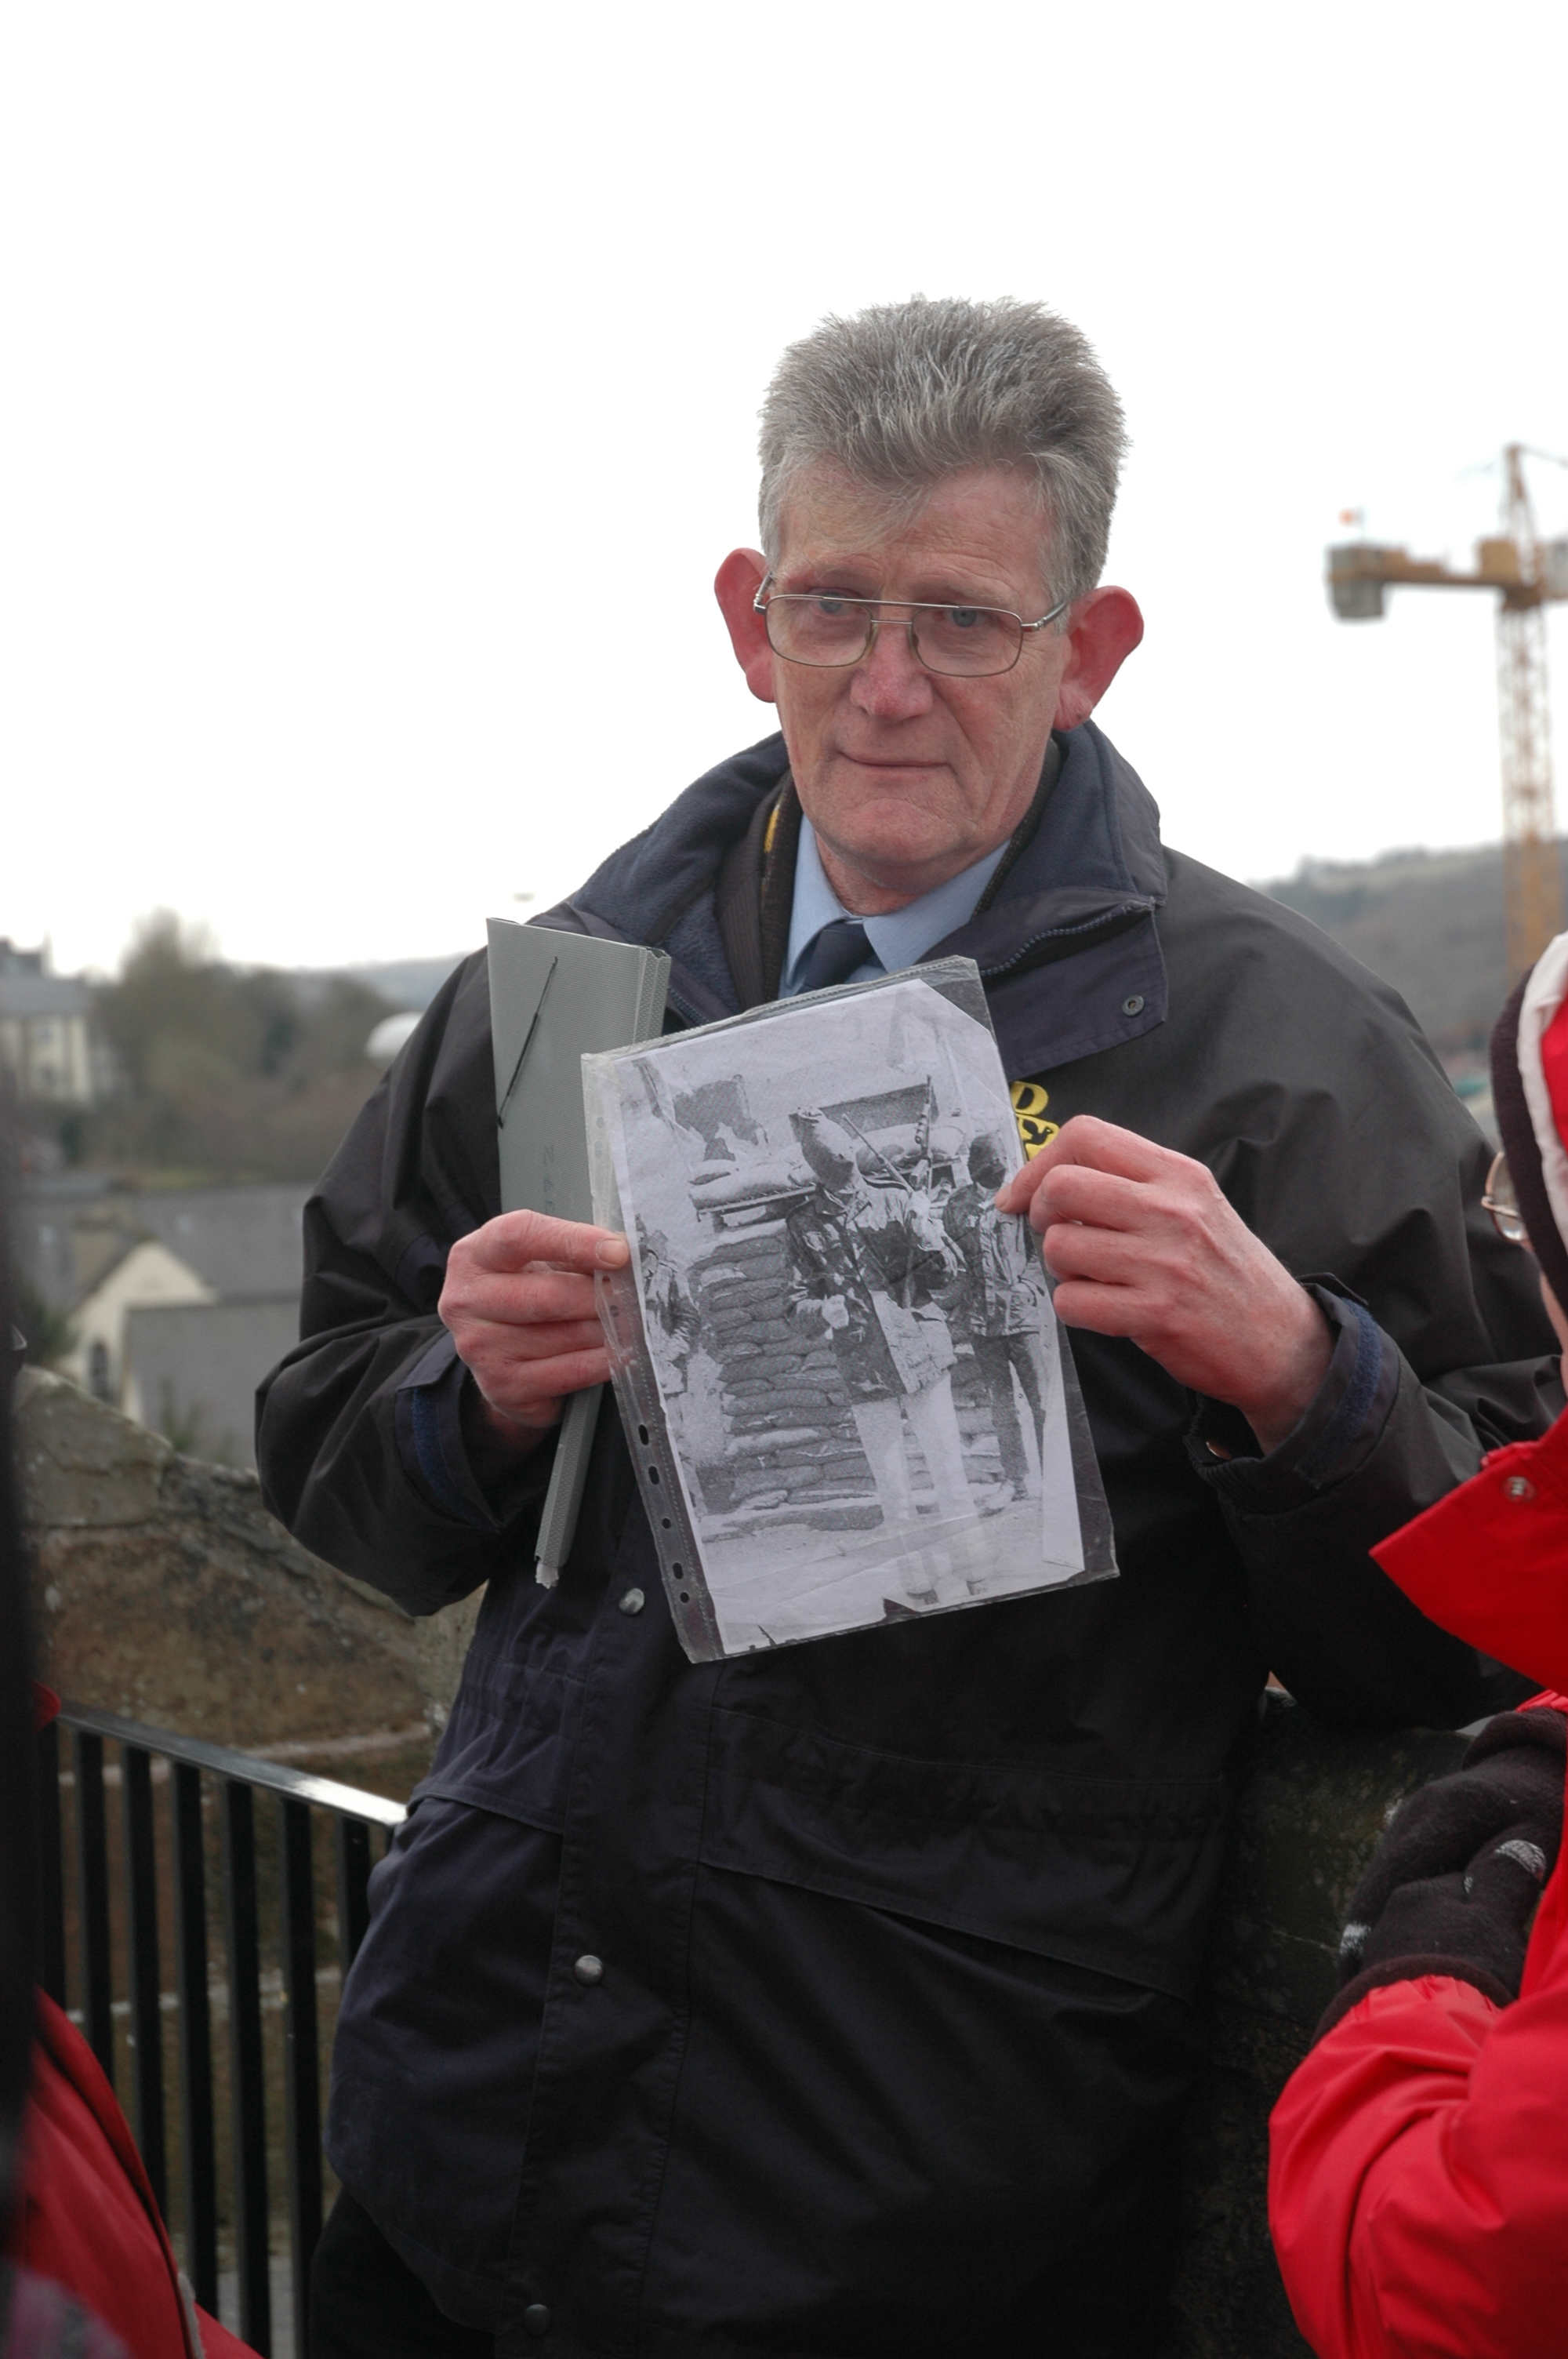 Our tour of Derry/Londonderry included first hand accounts of Bloody Sunday by those working to bring about reconcilation